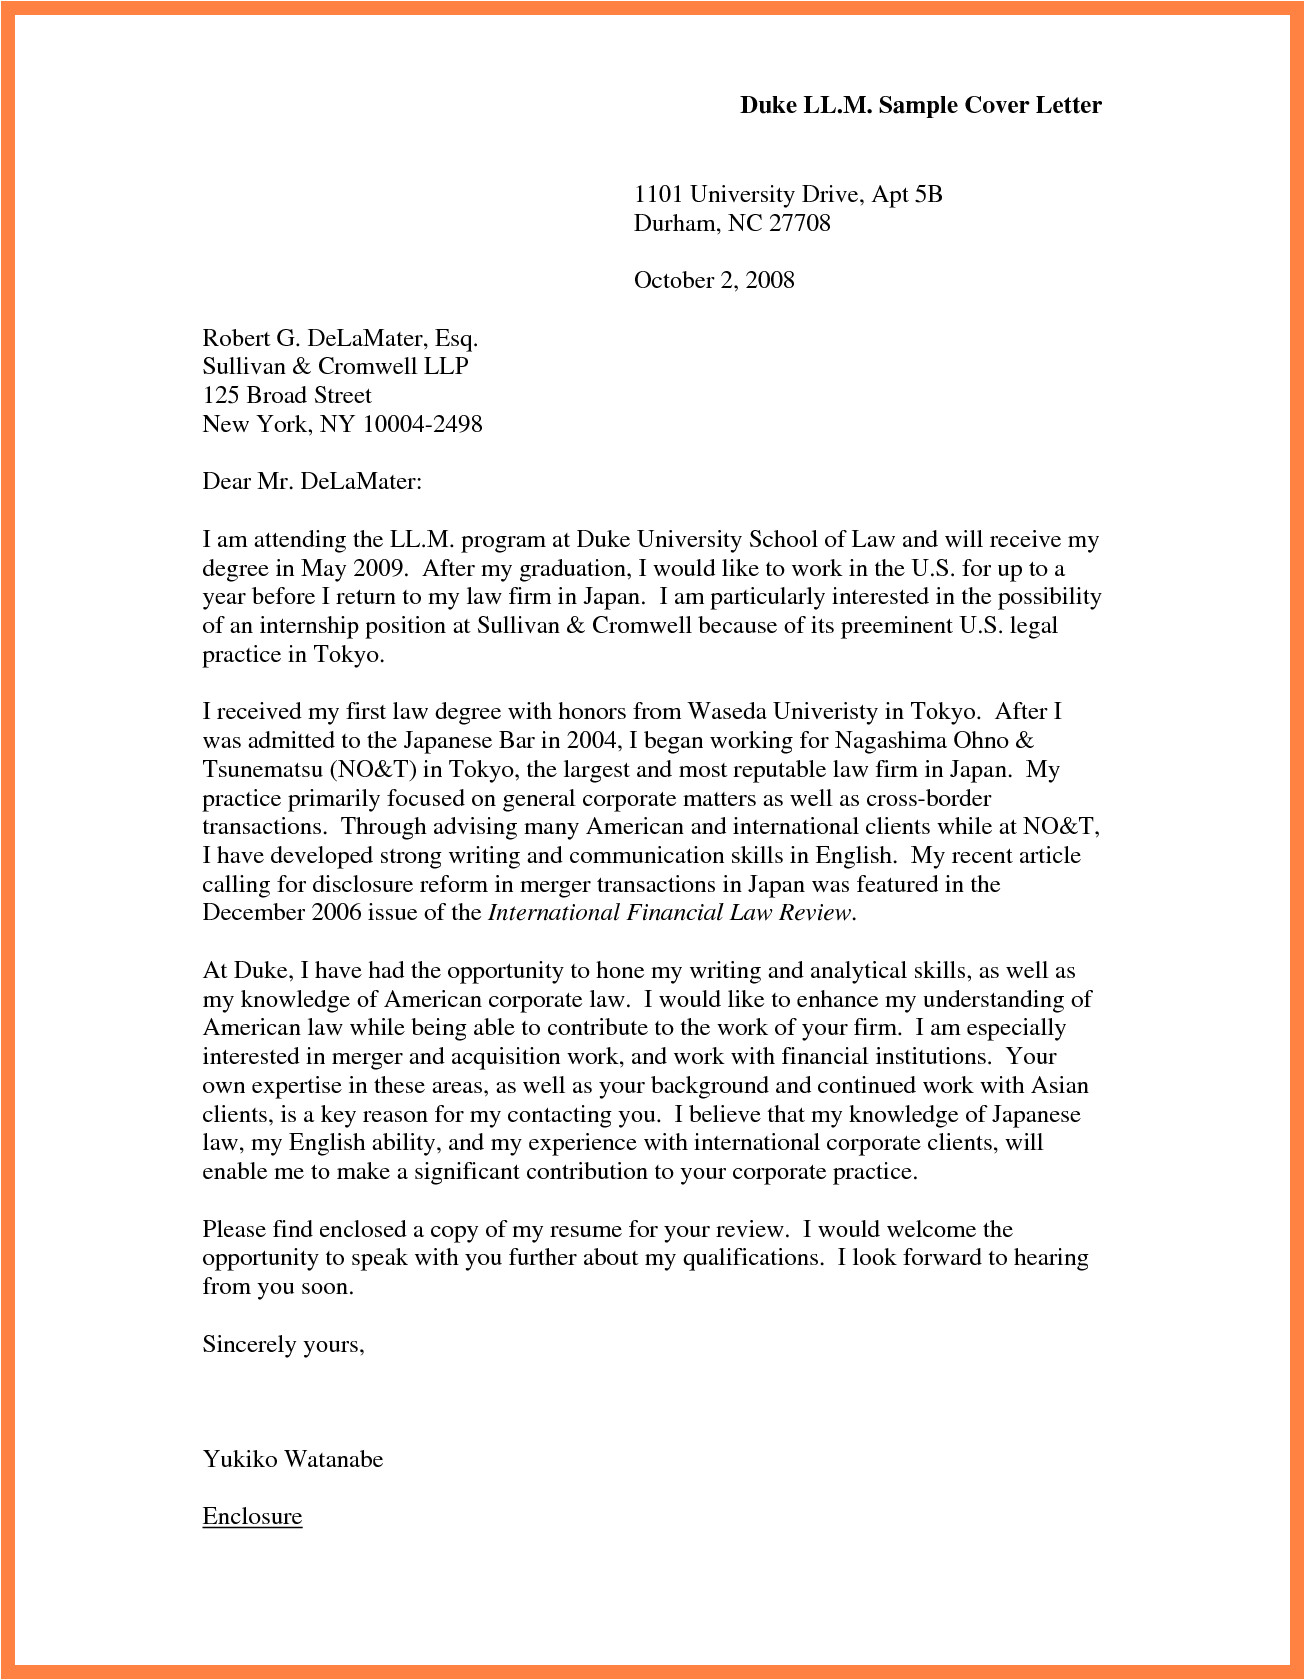 Cover Letter Examples for University Jobs Sample Cover Letter University Best Letter Sample